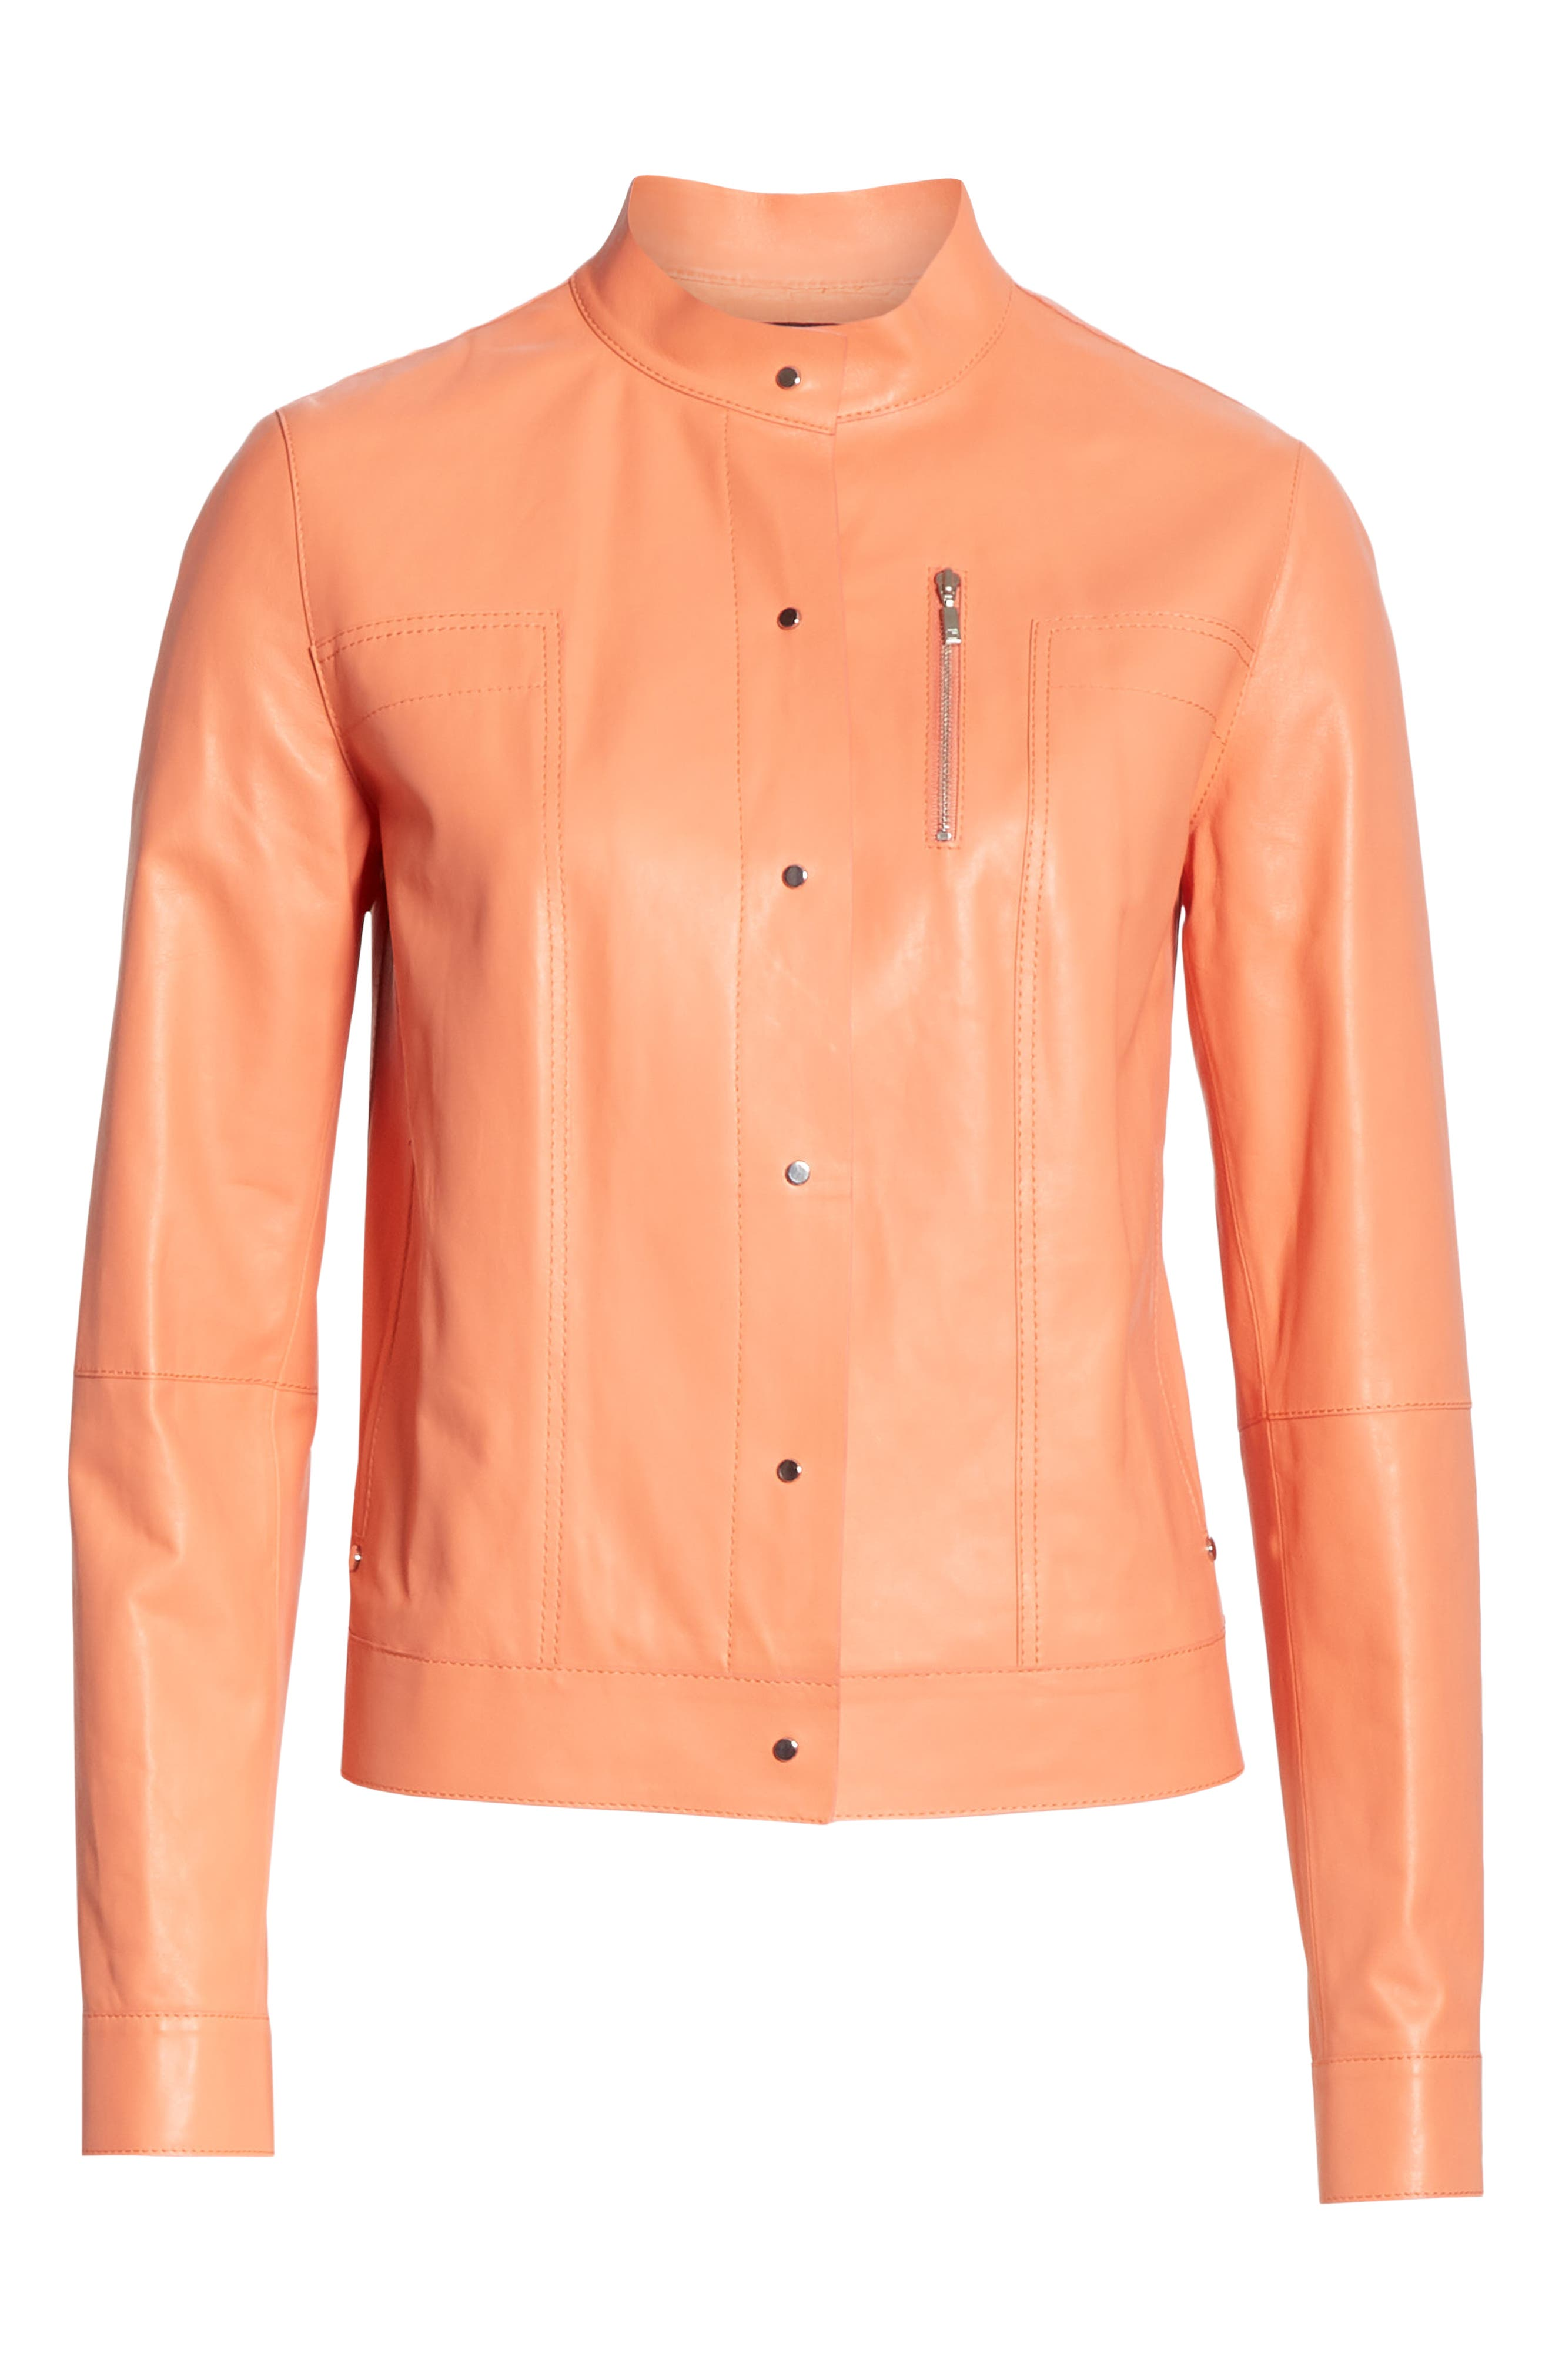 LAFAYETTE 148 NEW YORK, Galicia Leather Jacket, Alternate thumbnail 5, color, PEACH ROSE